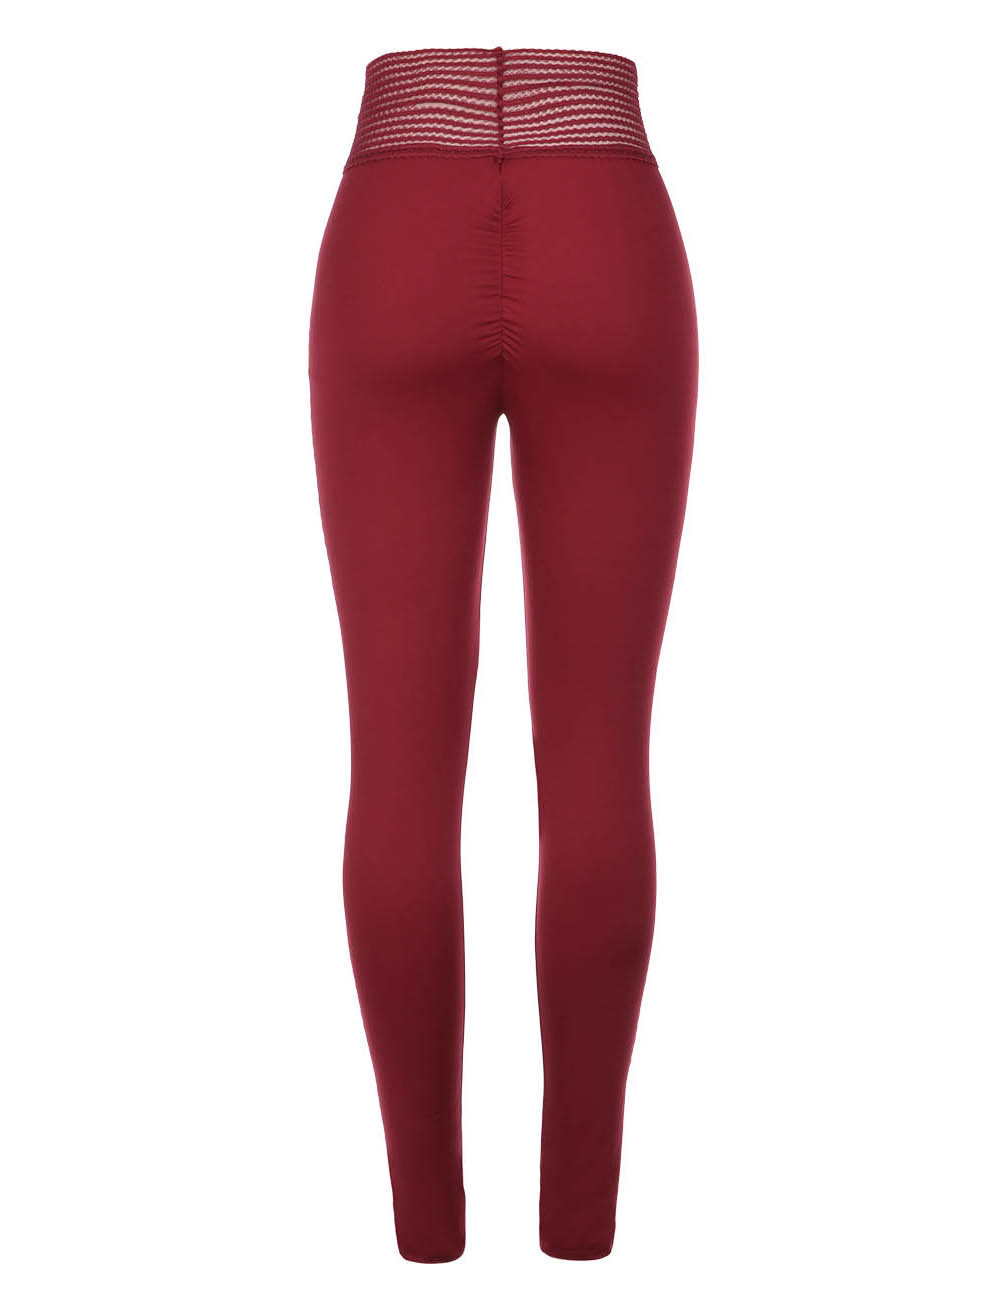 //cdn.affectcloud.com/hexinfashion/upload/imgs/SPORTSWEAR/Yoga_Legging/P180085-RD3/P180085-RD3-202002115e420569c8e8c.jpg